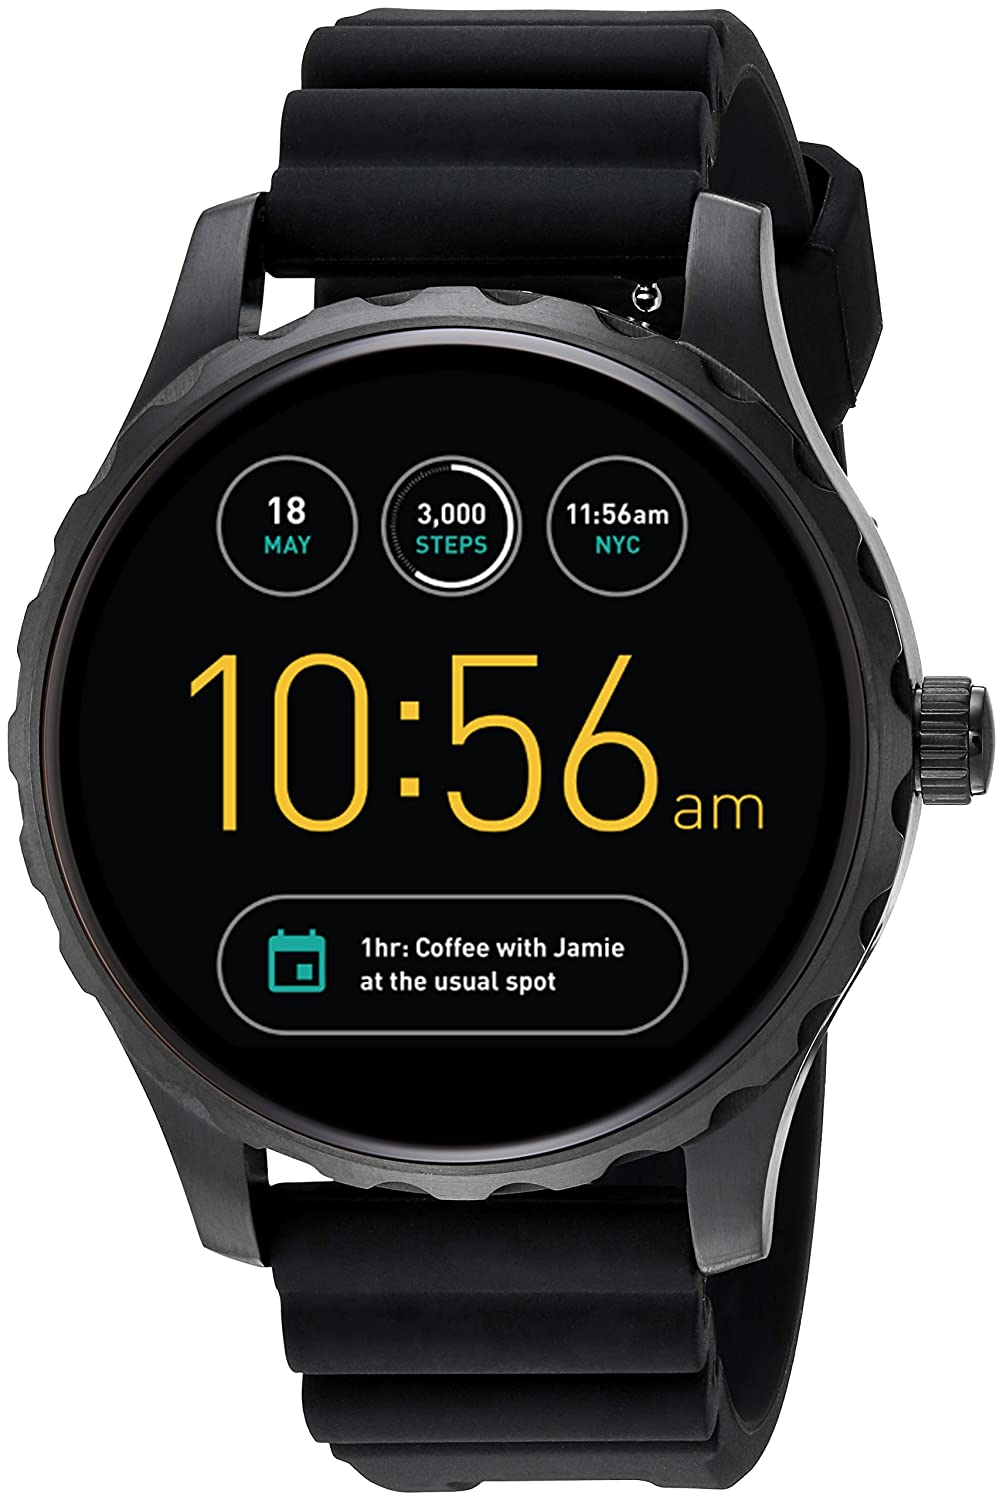 0365c4a49ef Amazon.com  Fossil Q Marshal Gen 2 Black Silicone Touchscreen Smartwatch  FTW2107  Watches